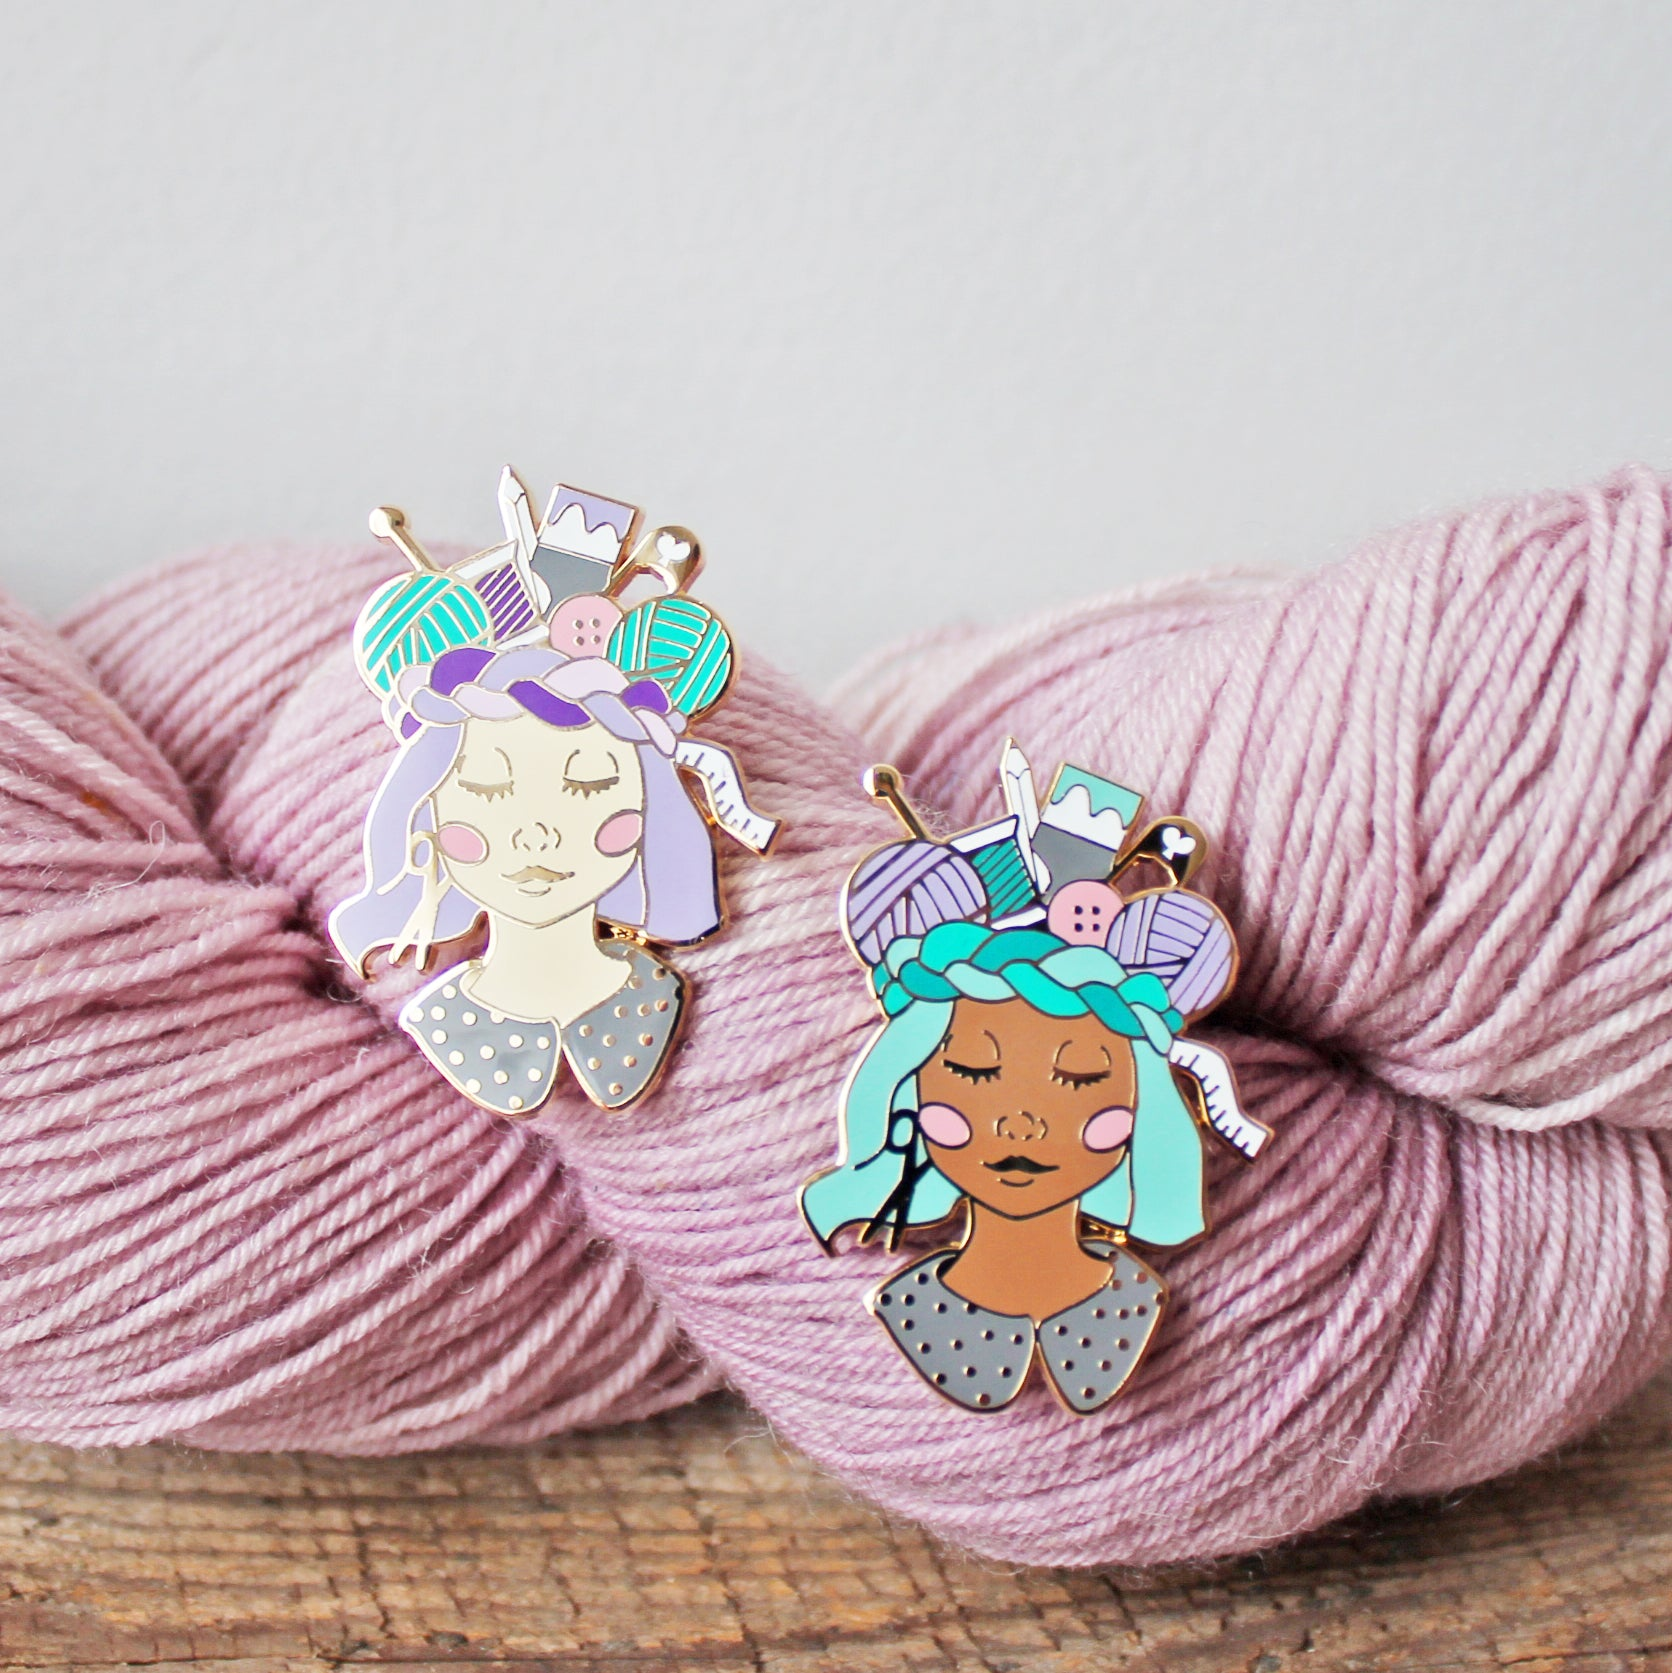 Craft Queen Enamel Pin - New Skin Tones!